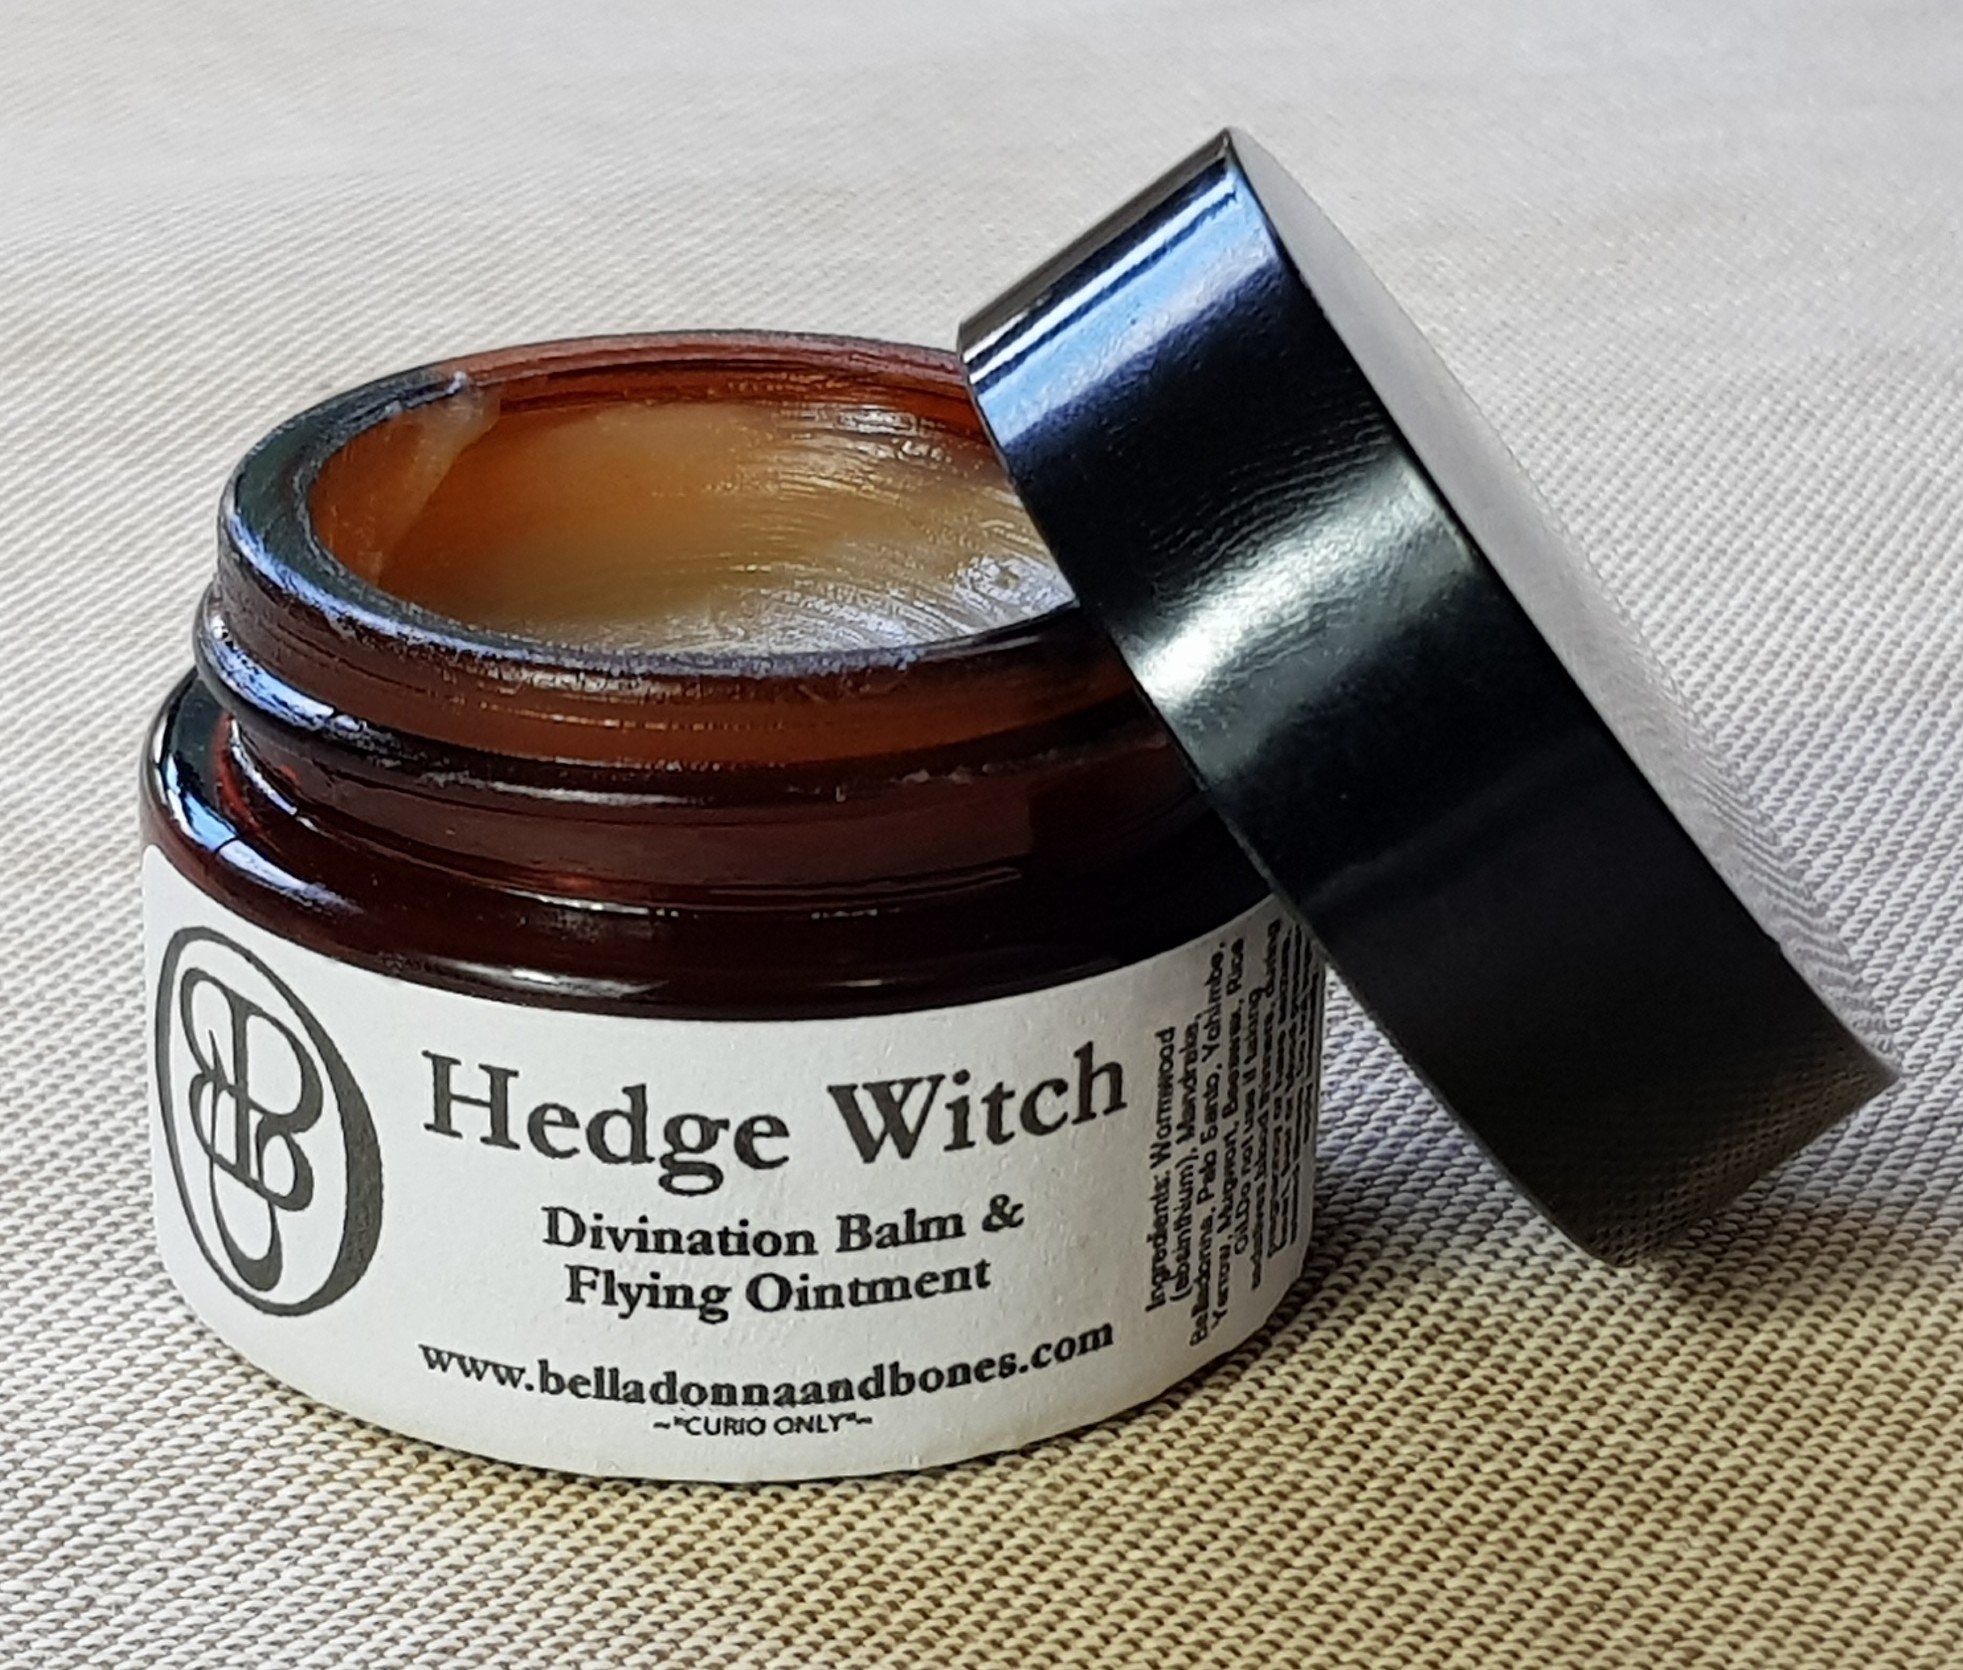 Hedge Witch - Divination Balm & Flying Ointment Hedge_full